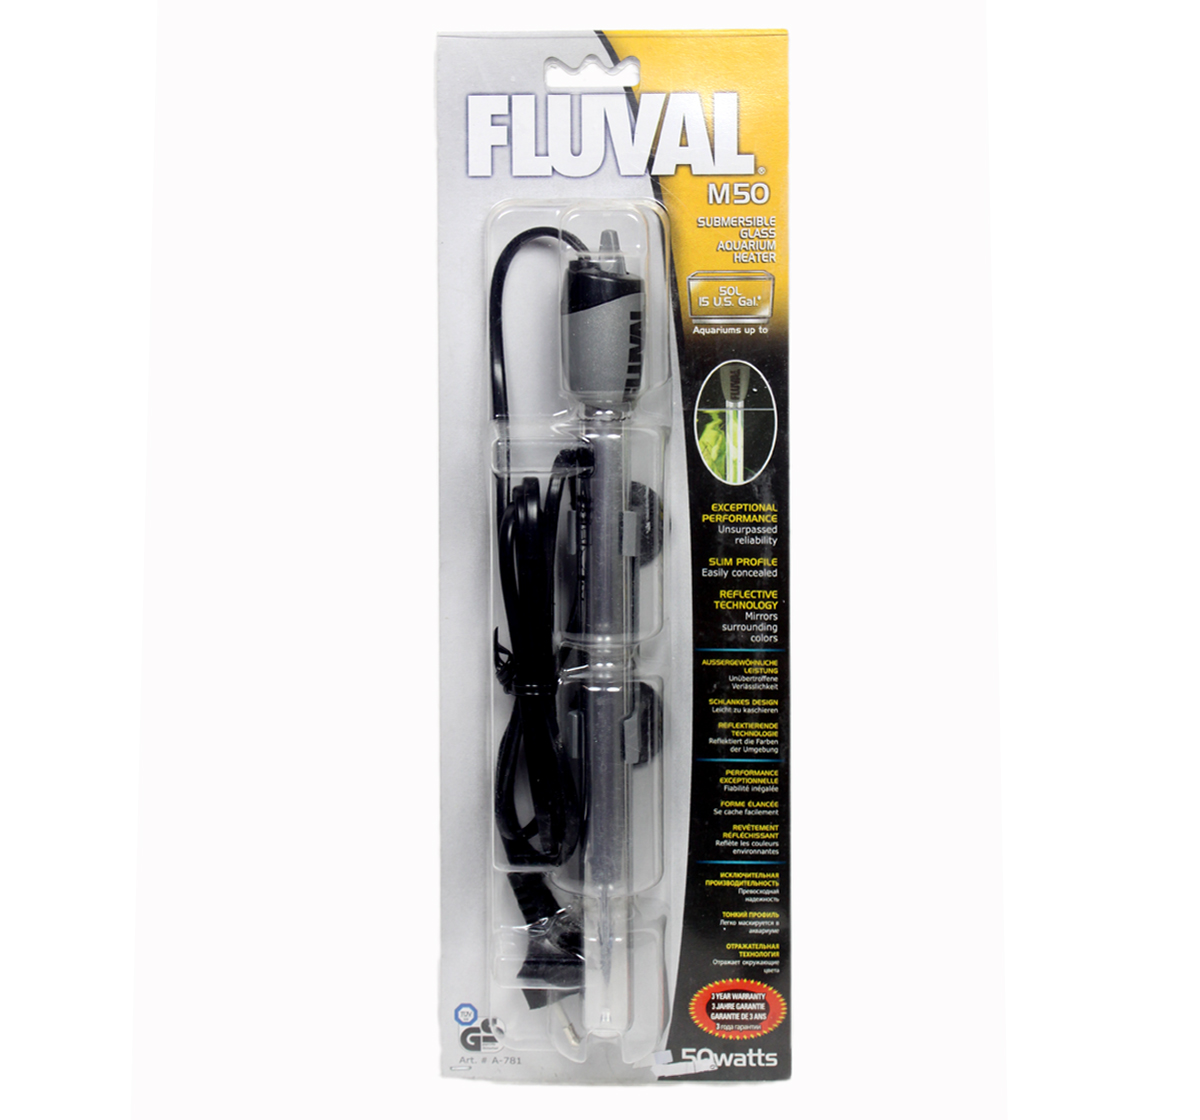 Submersible Water Heater For Turtles : Fluval Submersible Heater - M50 50 Watts Aquarium Heater Fluval ...